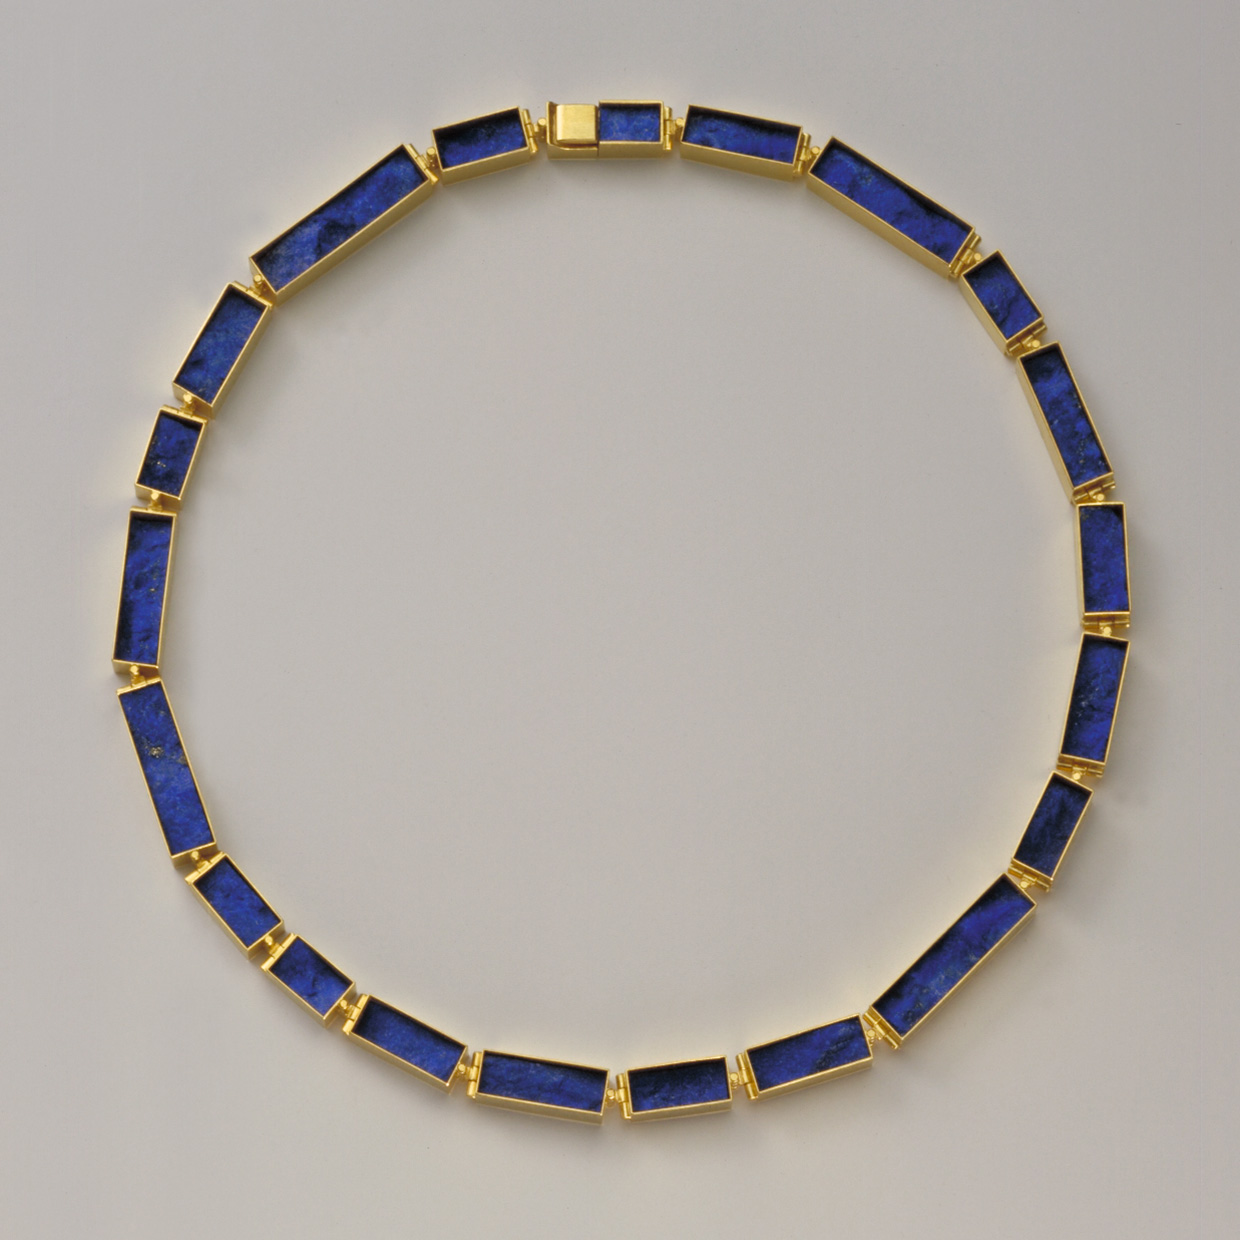 necklace  2006  gold  750  lapislazuli  460x7  mm